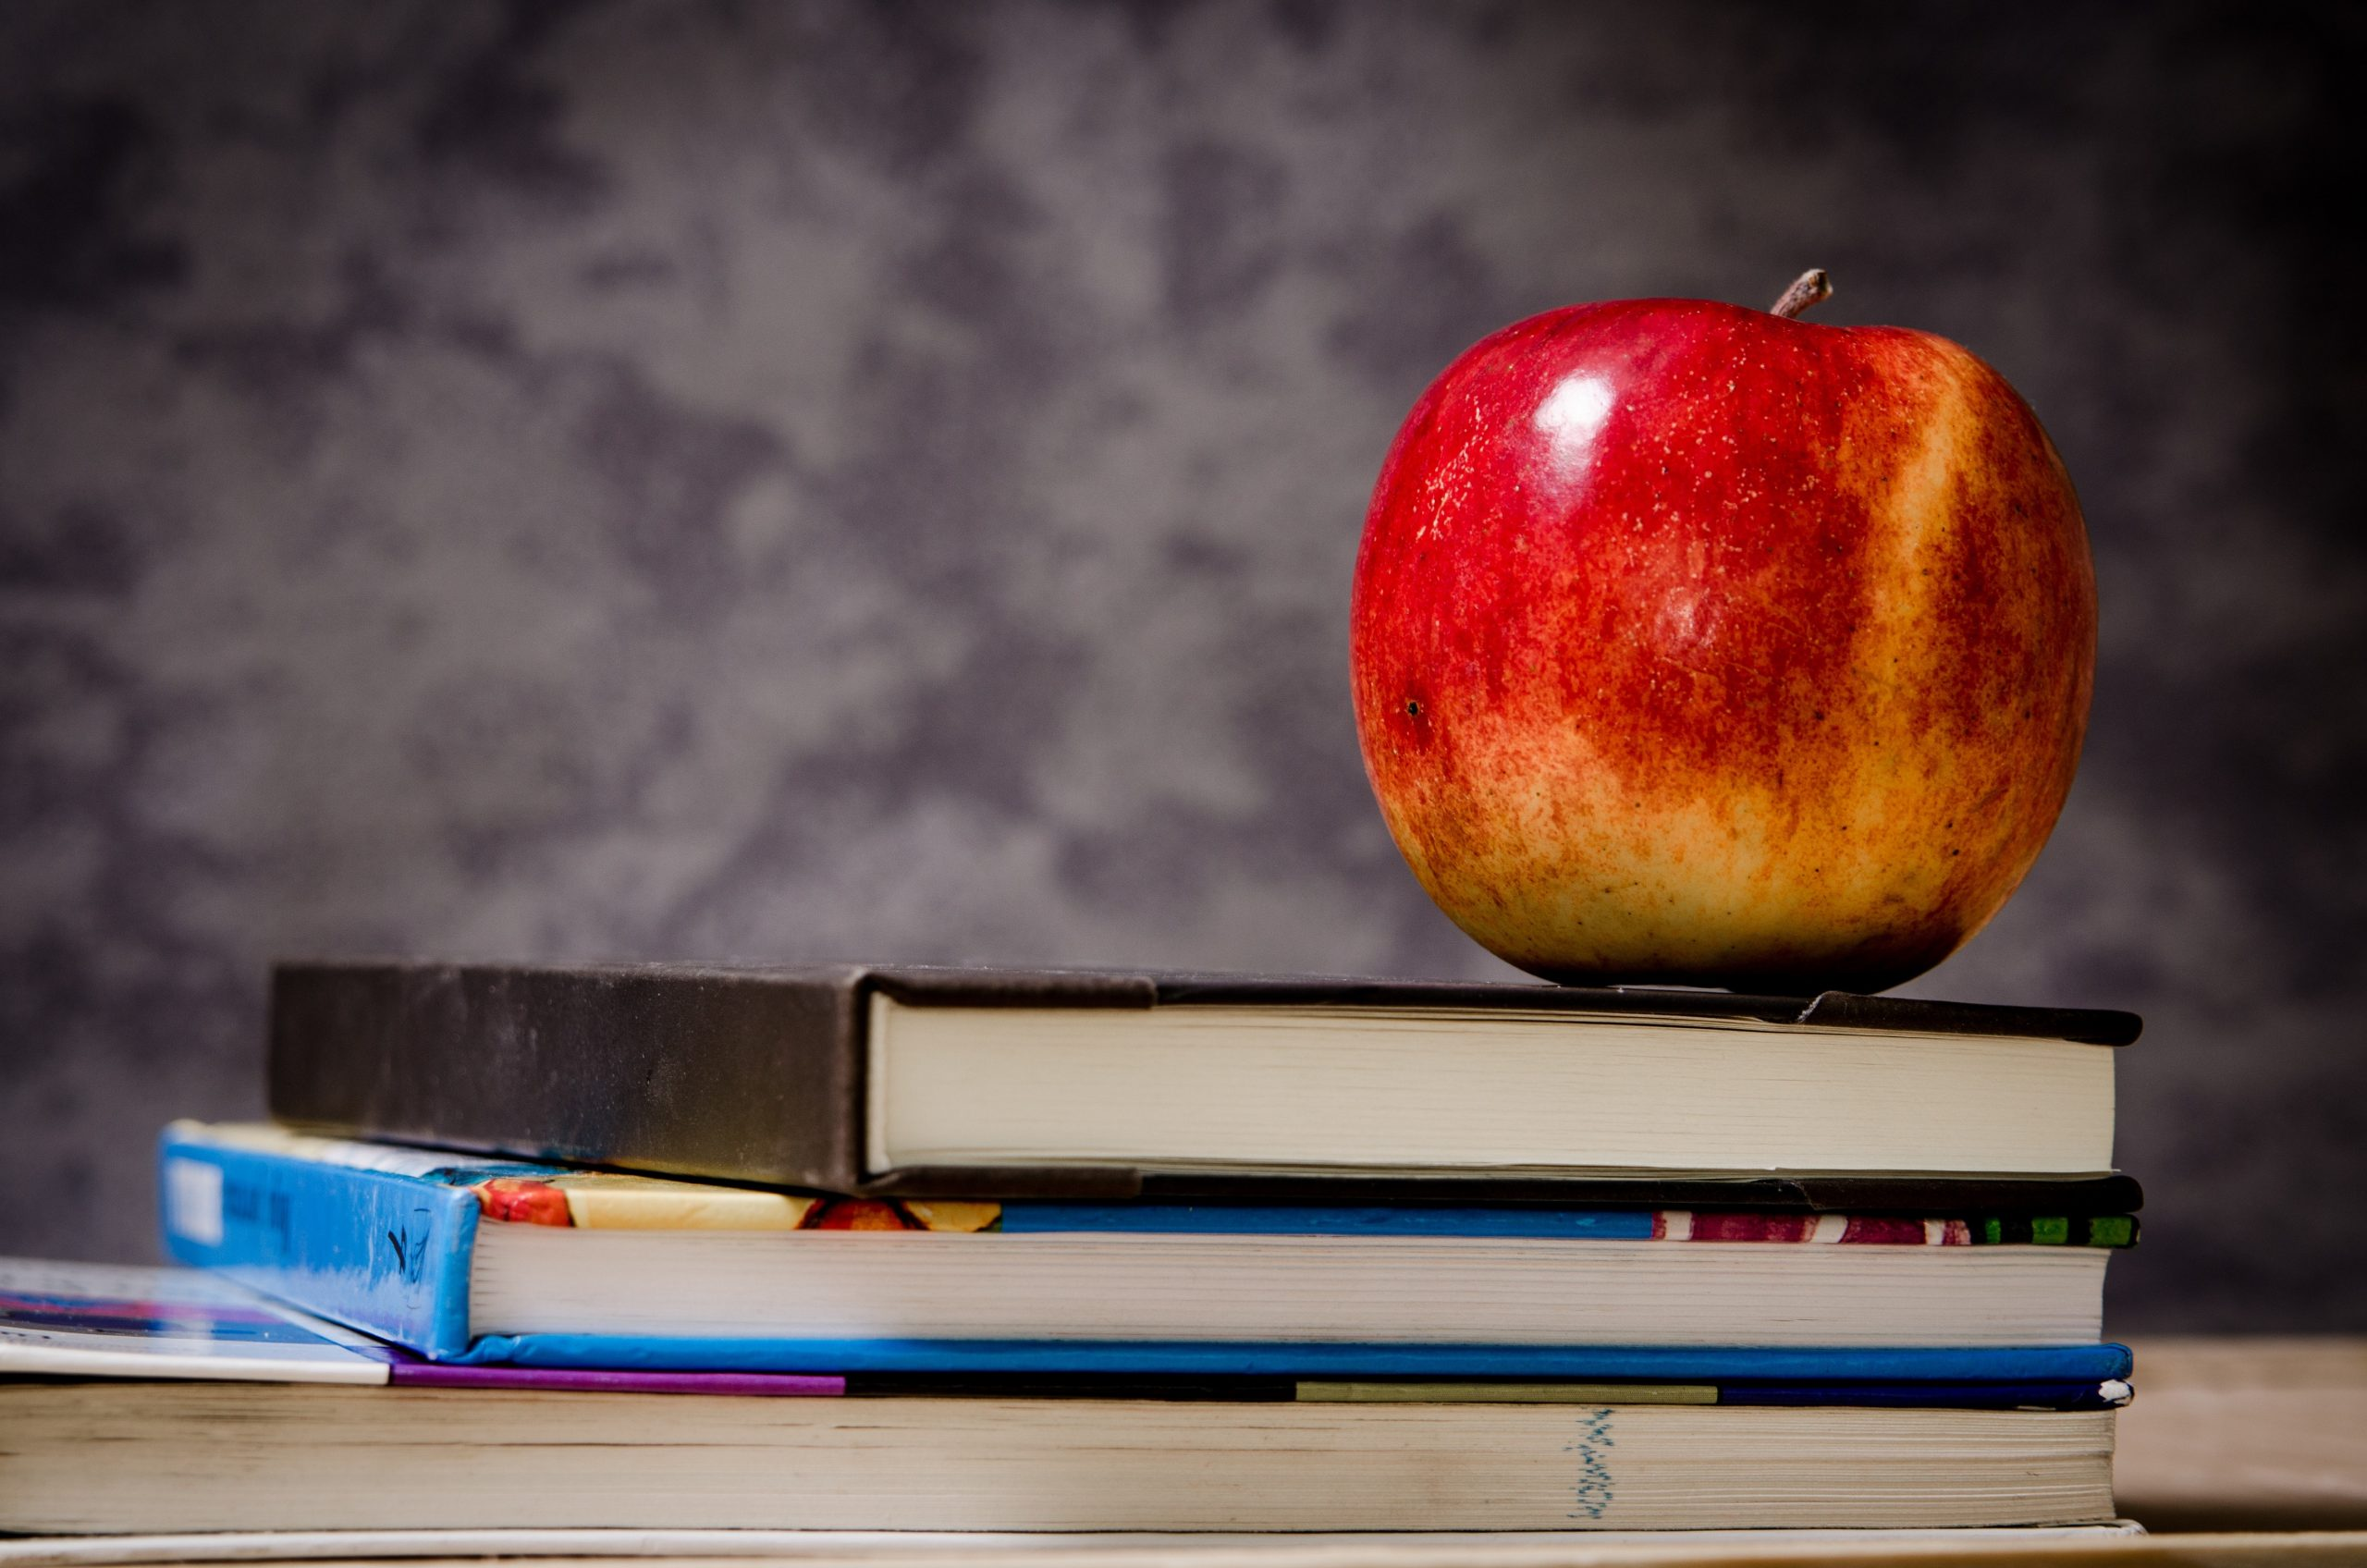 close-up-of-apple-on-top-of-books